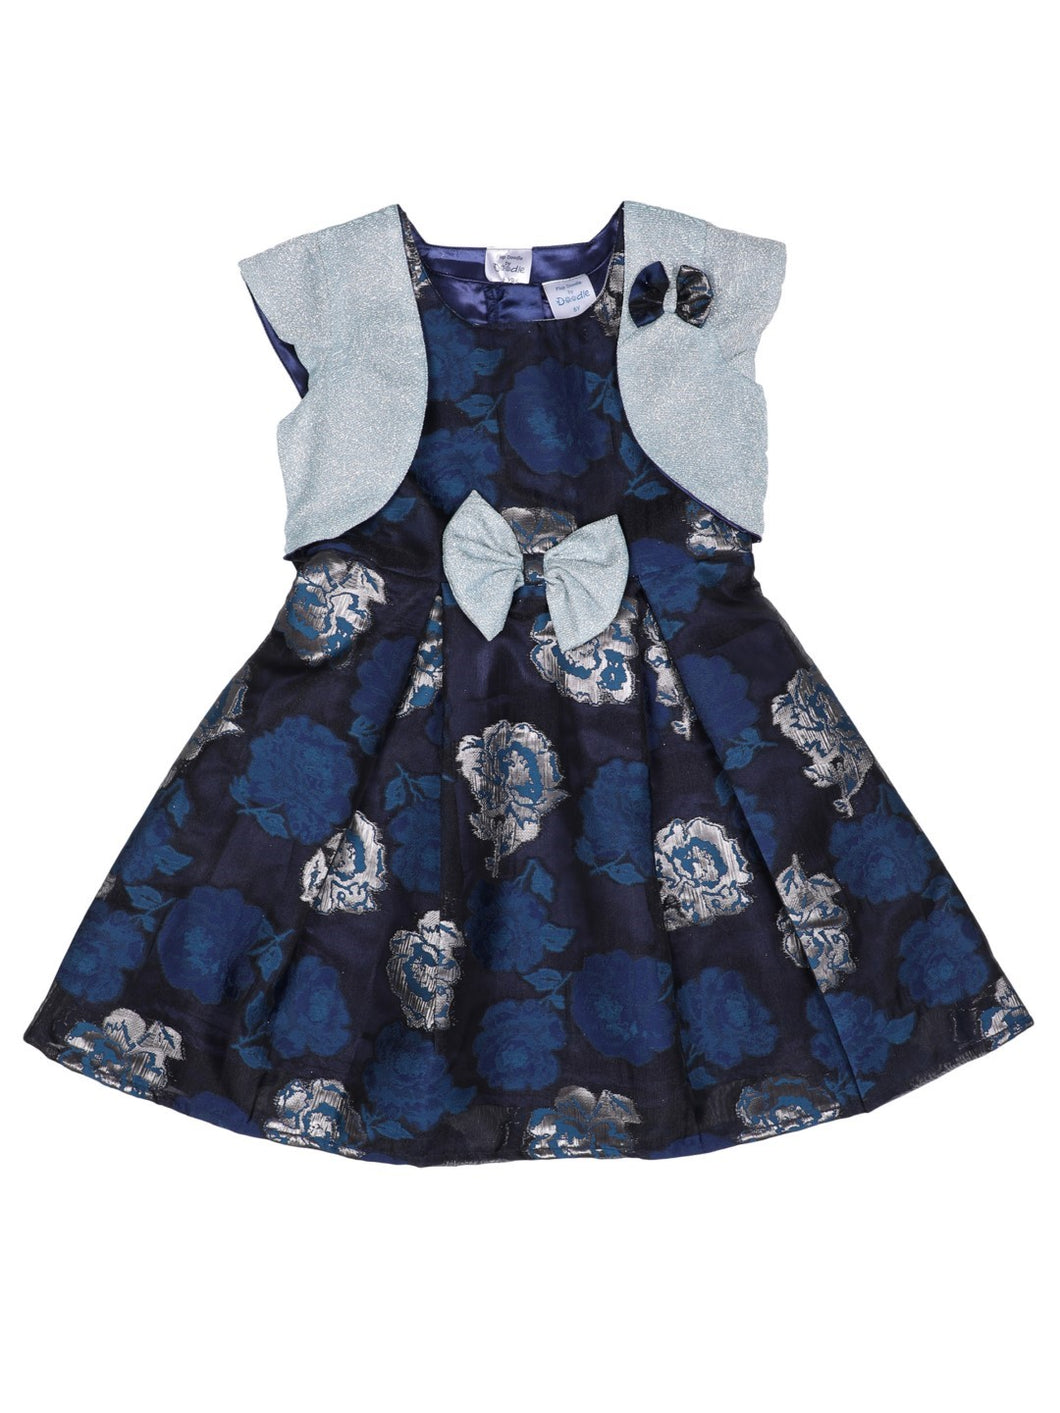 Navy jacquard Dress with Stylish Shrug